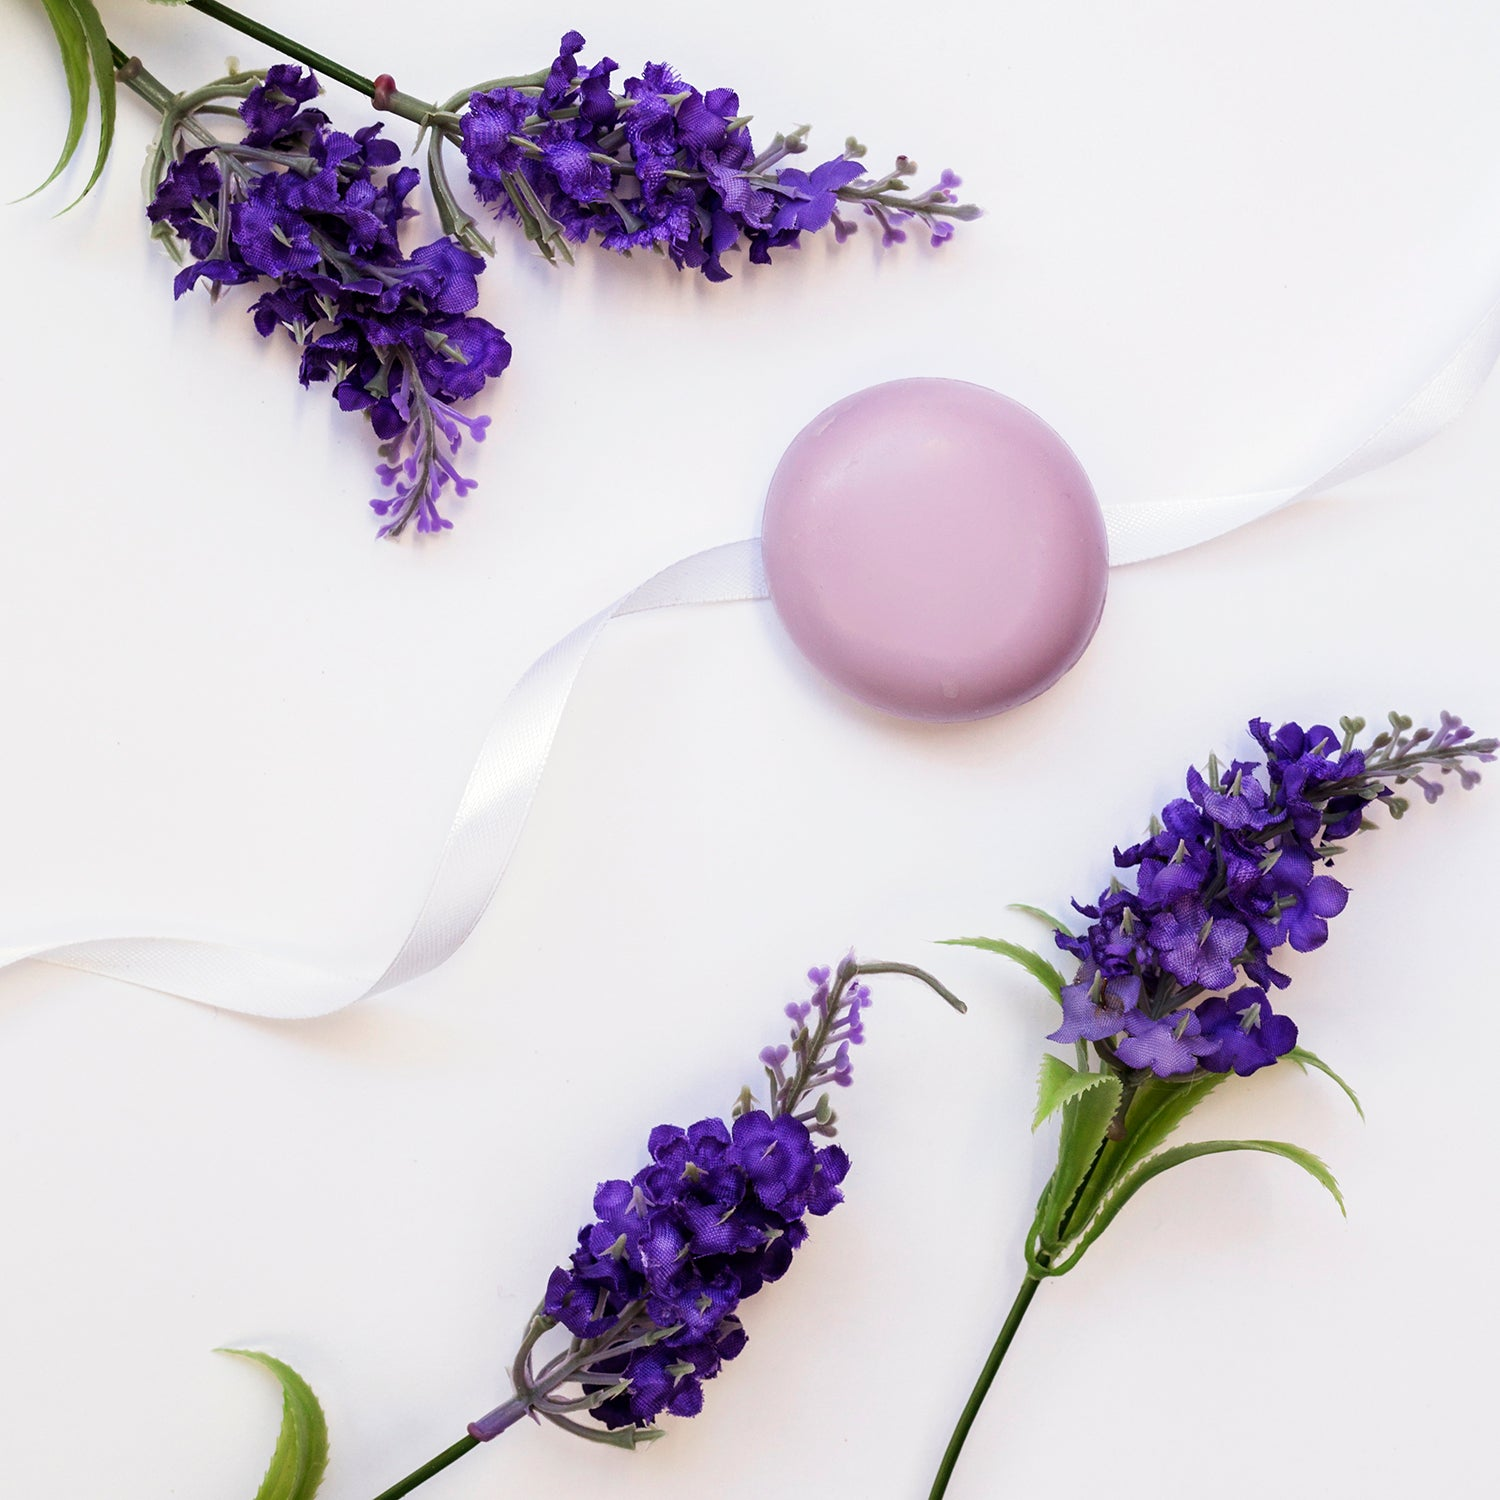 3 Misconceptions About Lavender